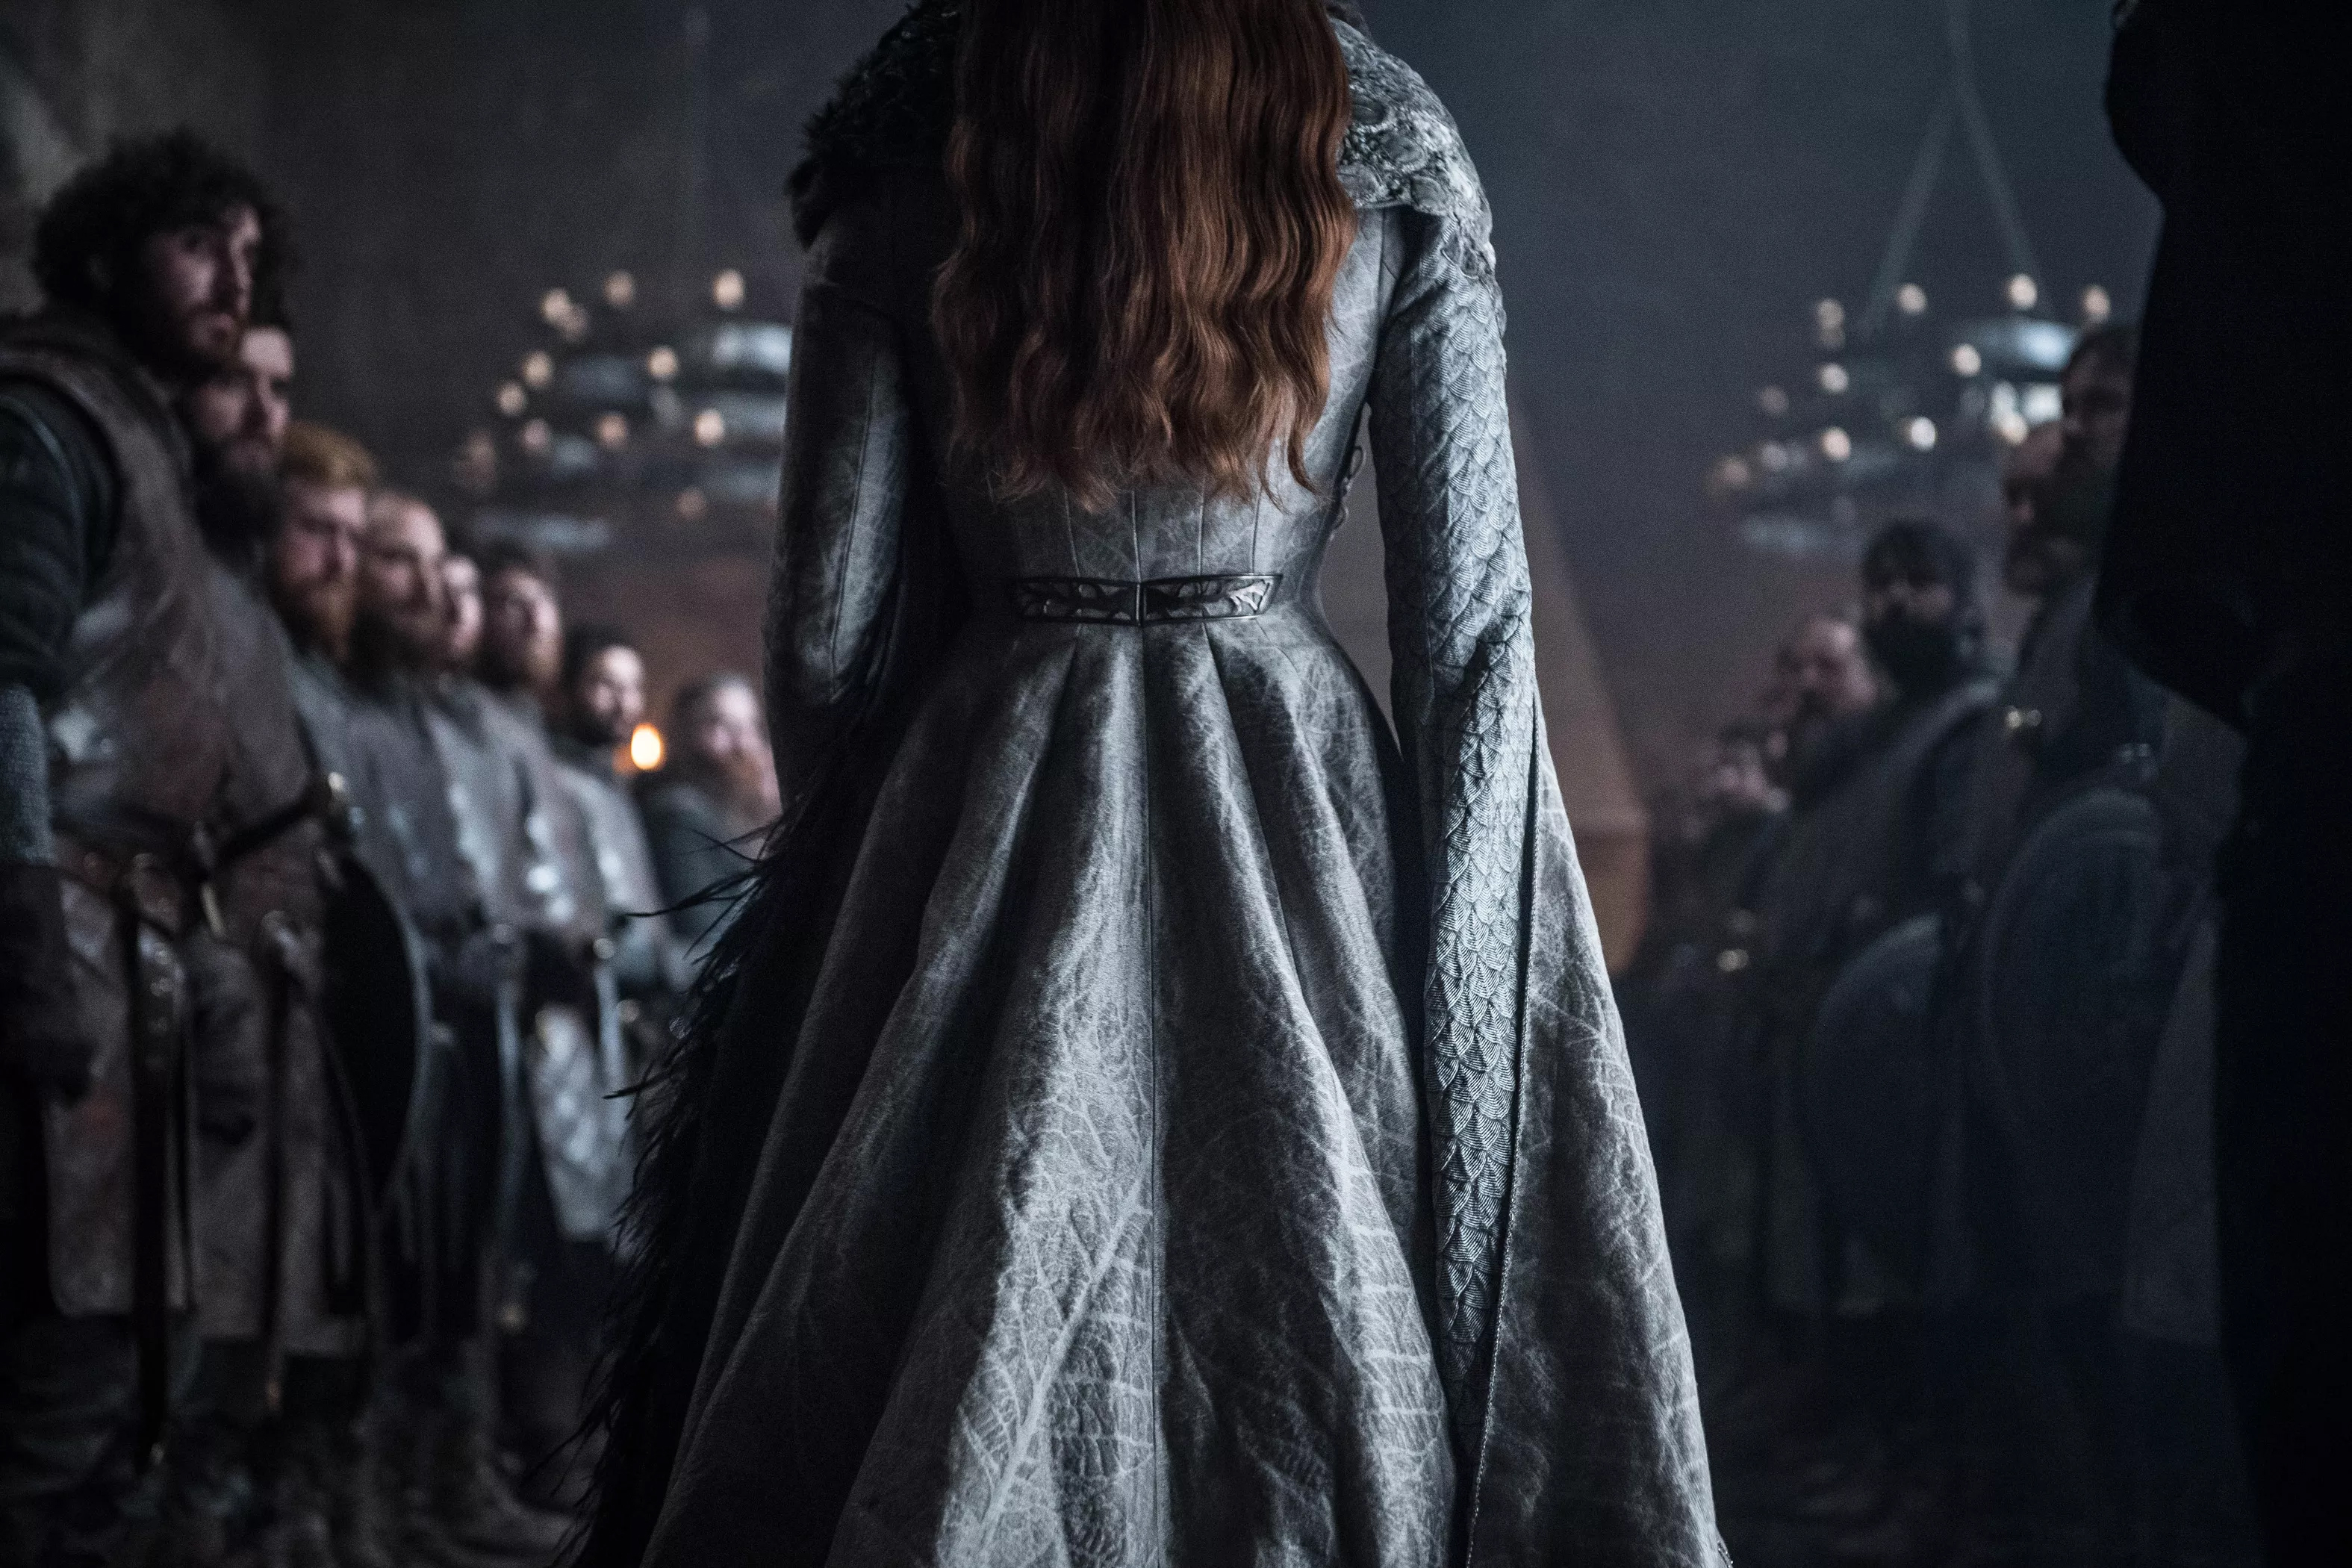 8x06 - The Iron takhta - Sansa